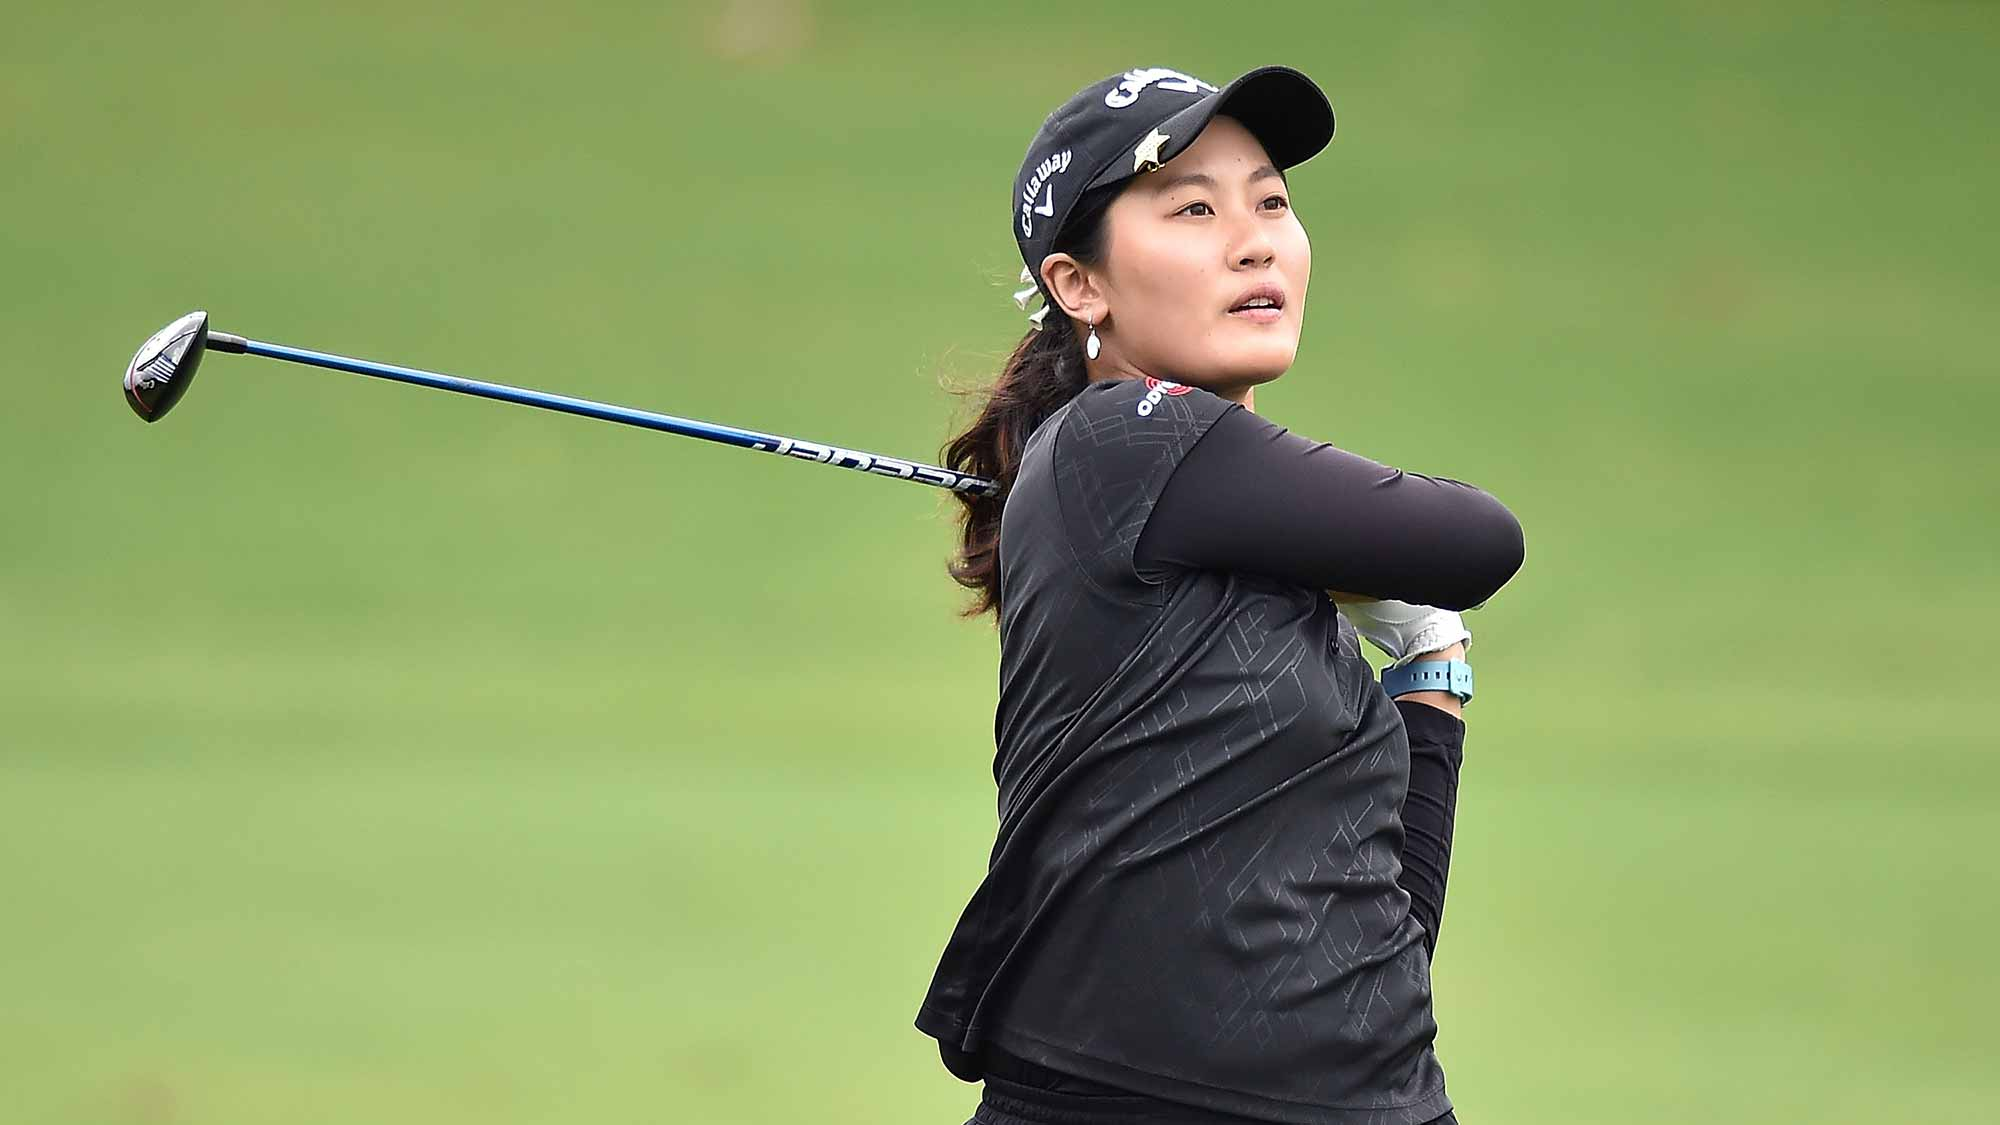 Xi Yu Lin of Republic of China plays a shot during the round second of 2015 Fubon LPGA Taiwan Championship at Miramar Golf Country Club